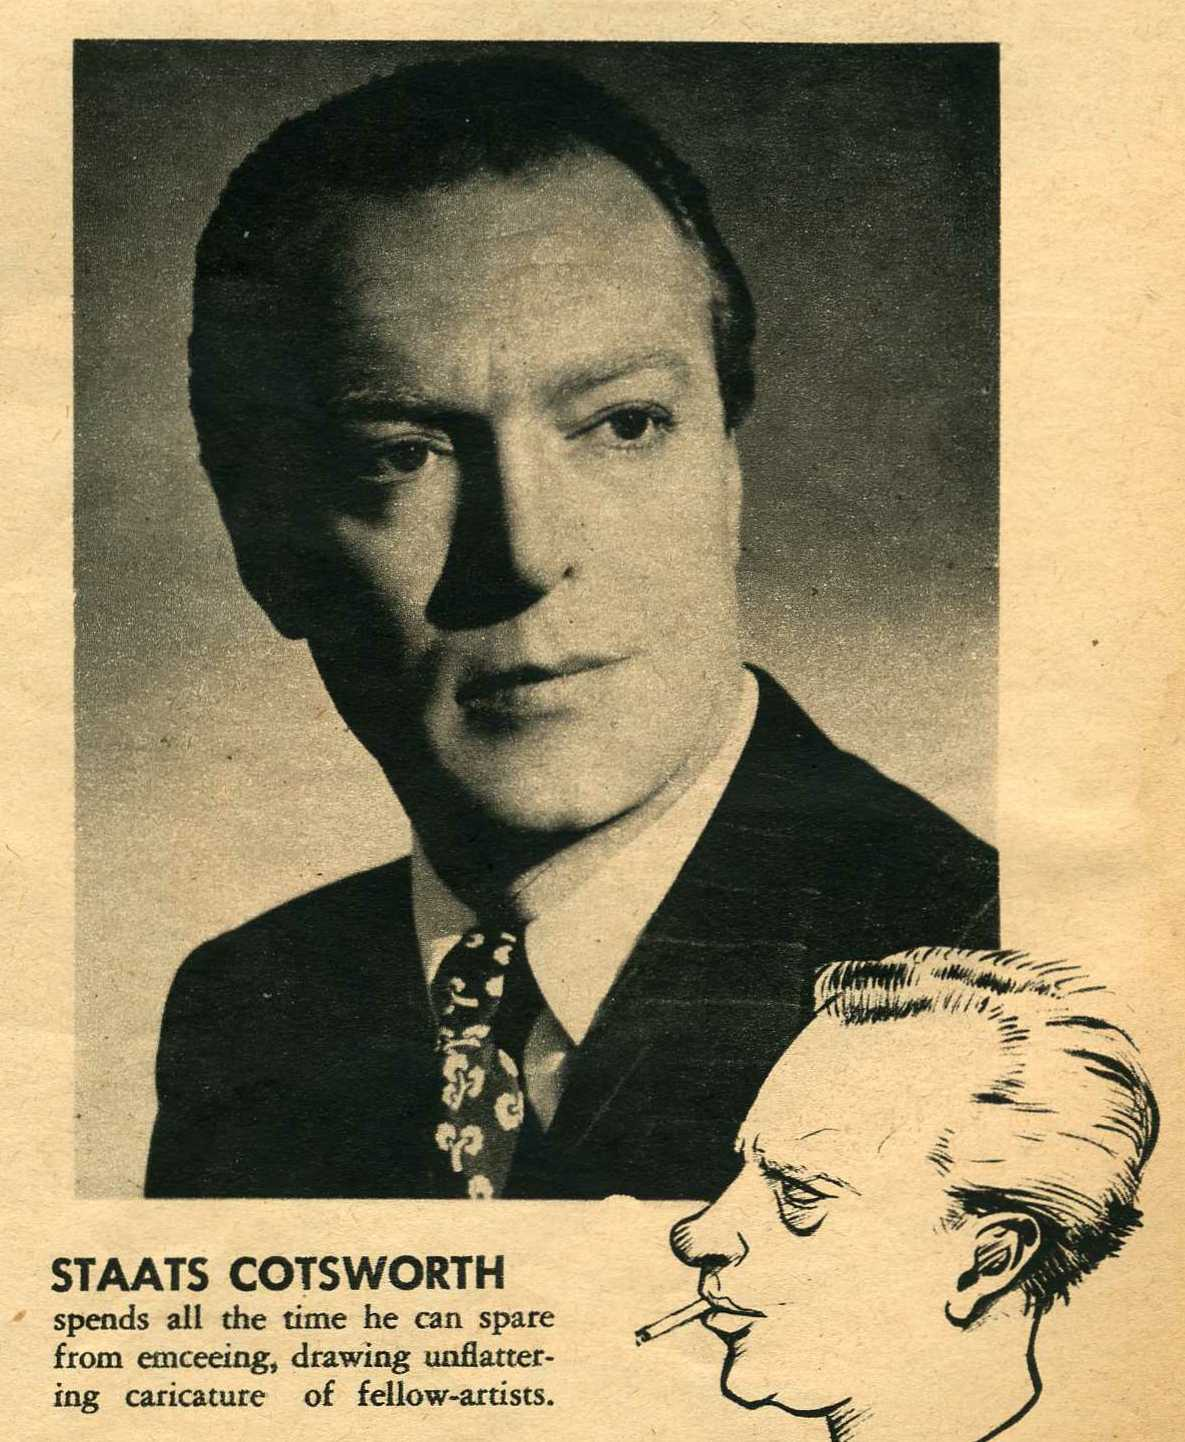 Staats Cotsworth of Casey